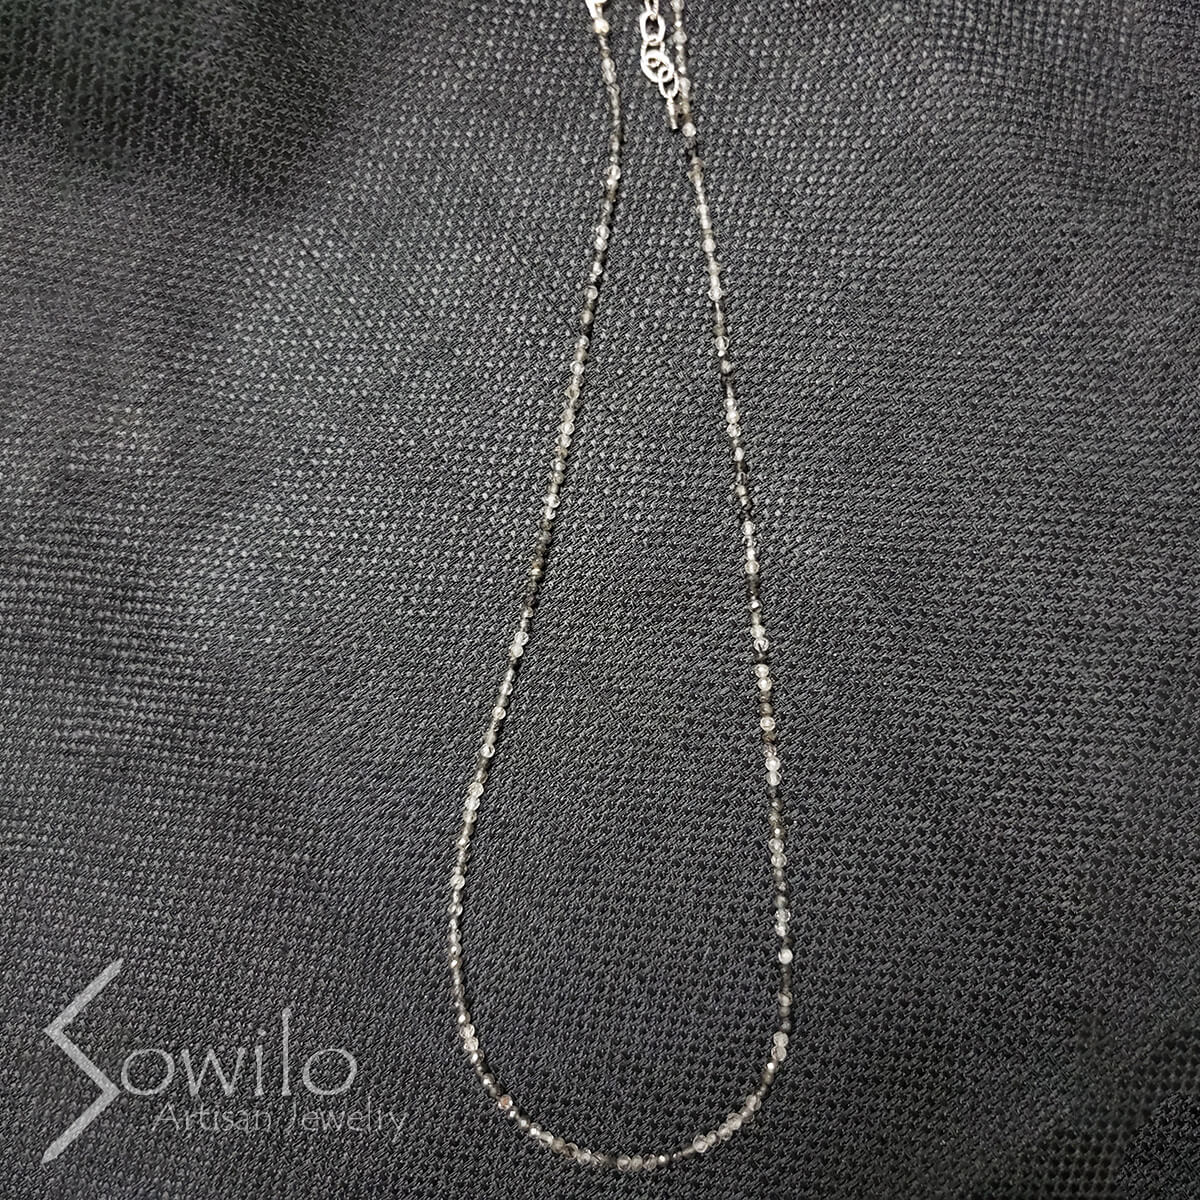 Sowilo Artisan Jewelry - For Sale Gallery